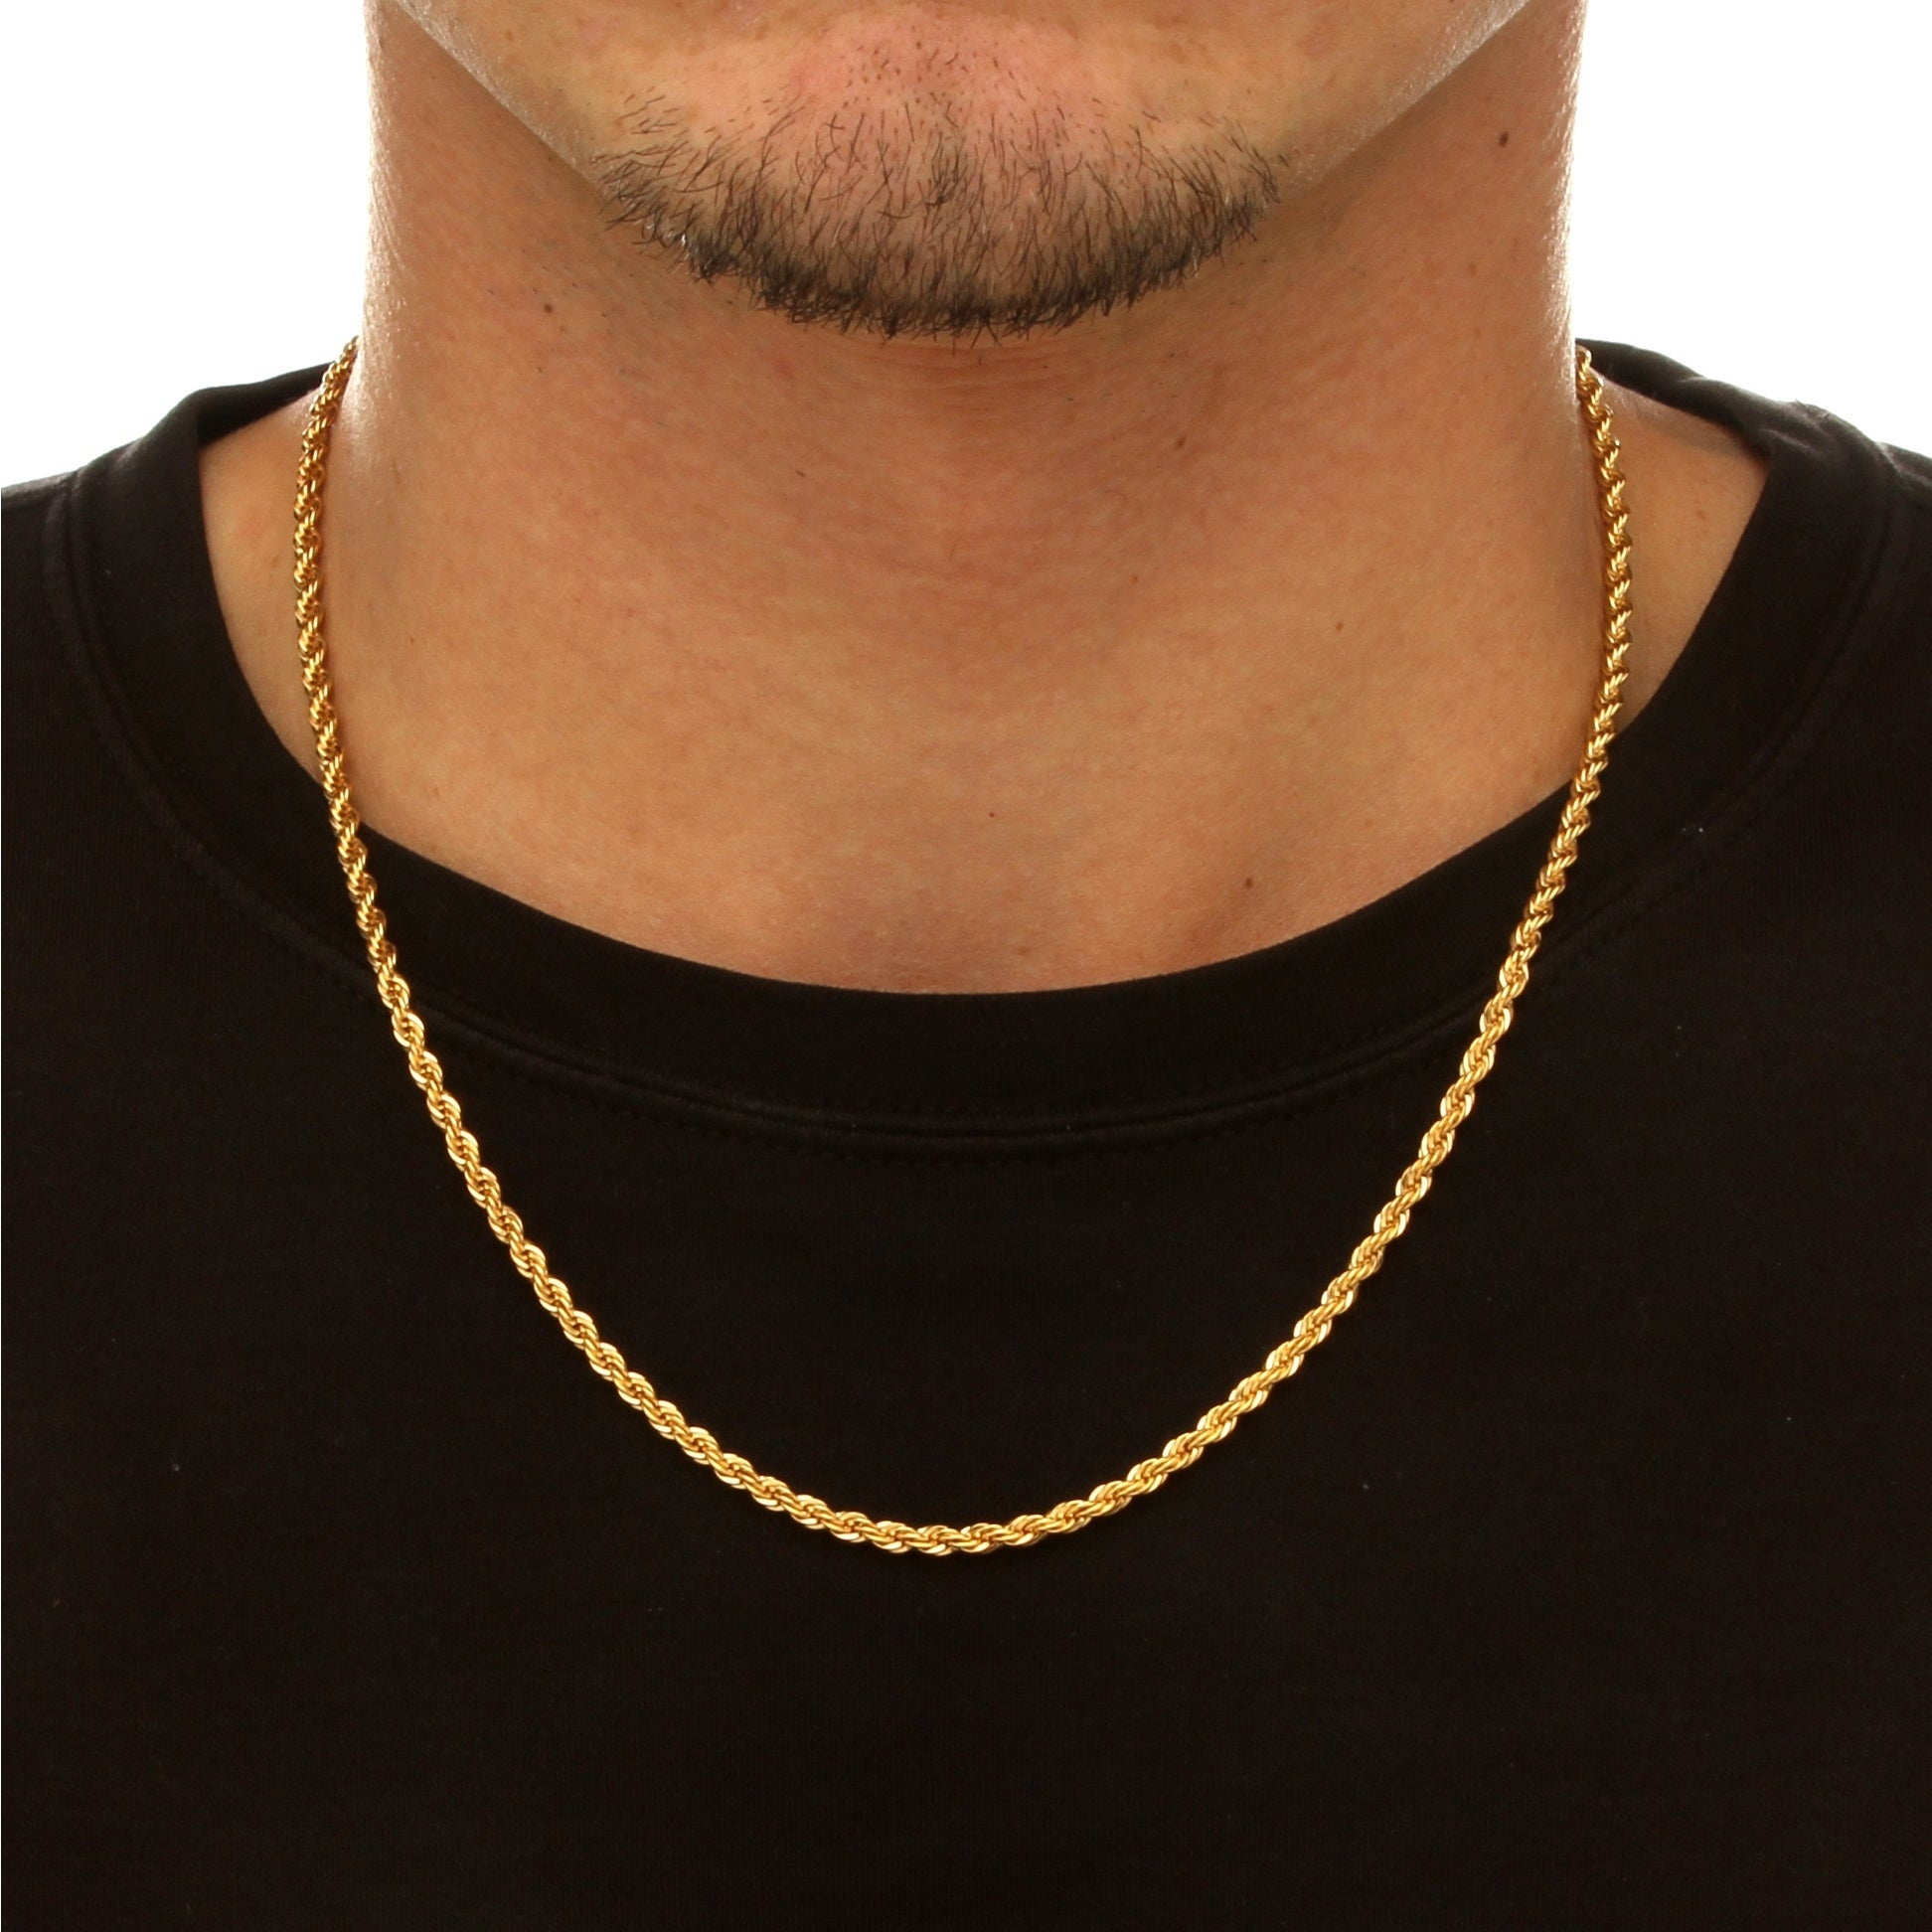 jewelry inch konov black stainless com chains steel mens chain inches dp amazon necklace